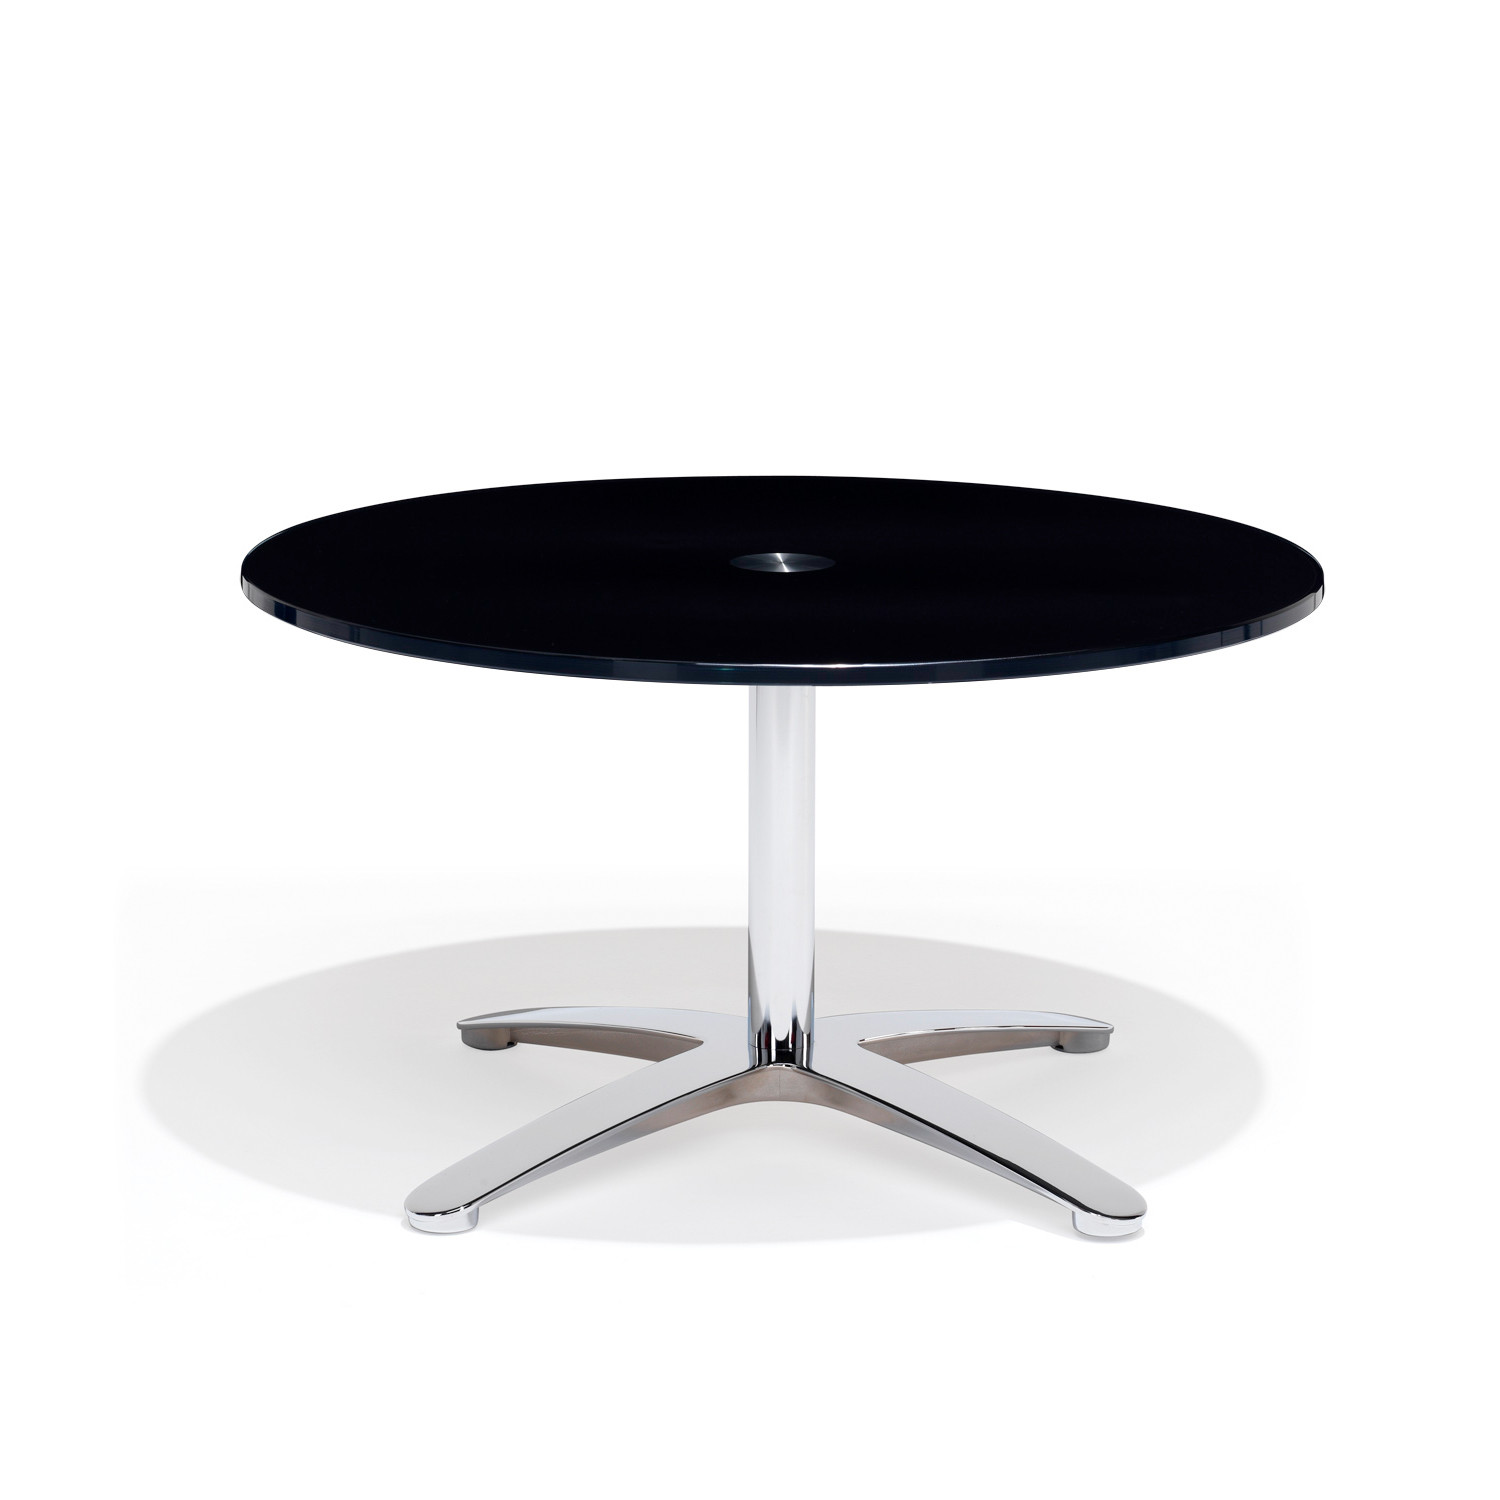 8200 Volpe Coffee Table with round-shaped top